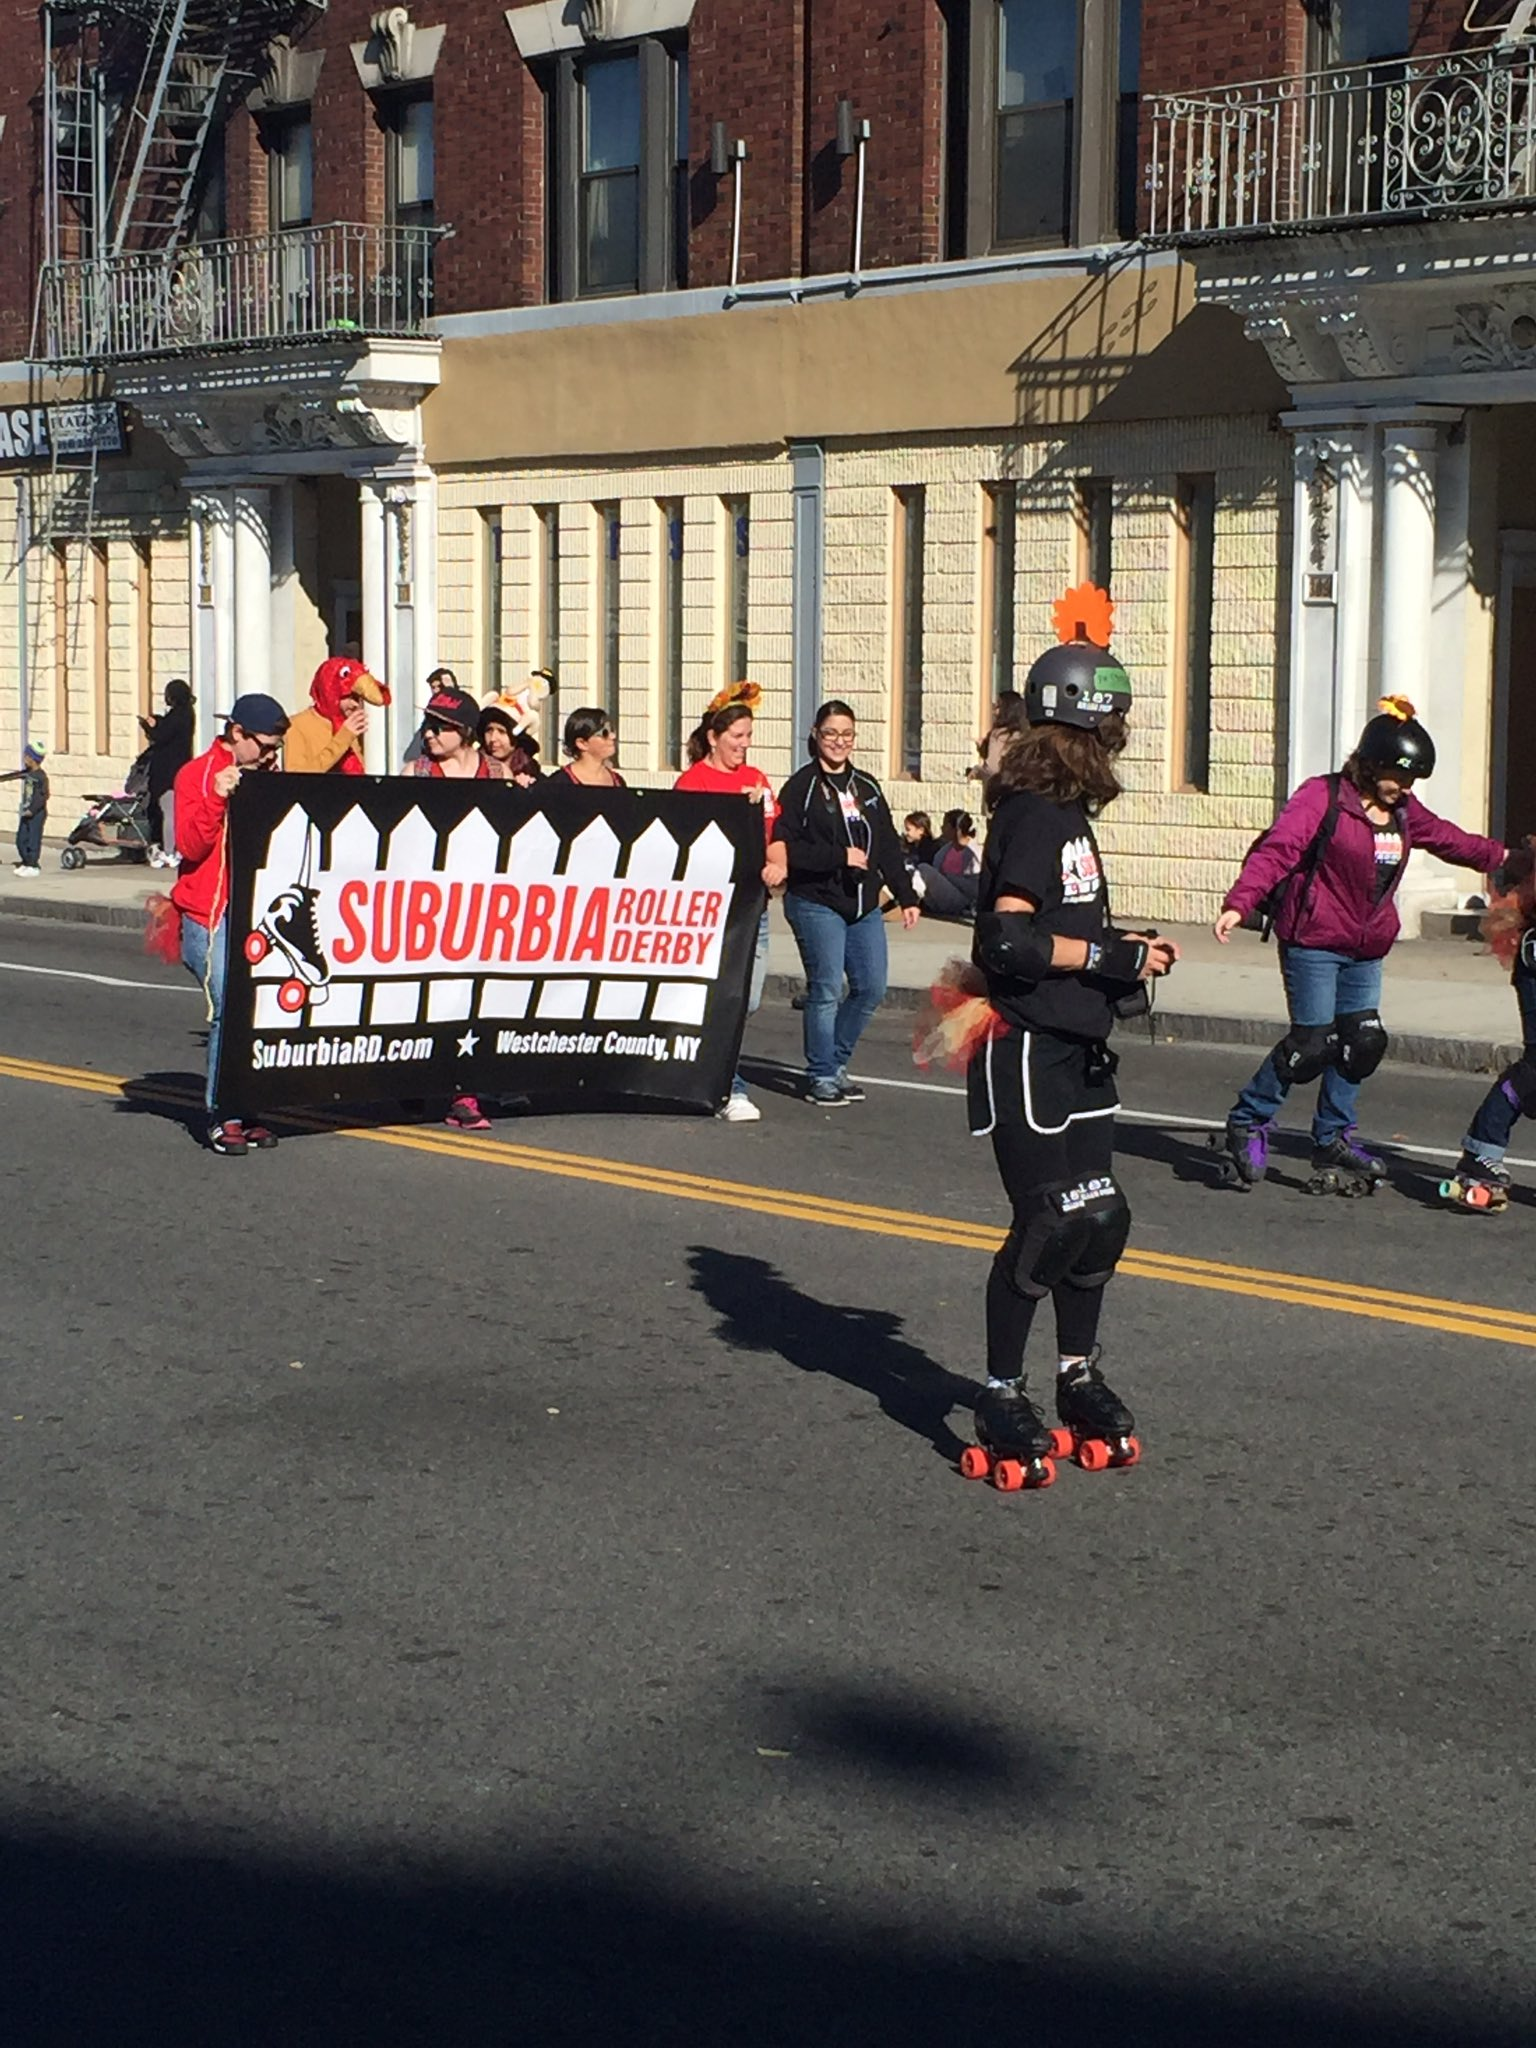 Great parade today @newrochamber @NewRochelleNY. We have a roller derby team?! Who knew. https://t.co/iHSrEt1B9d